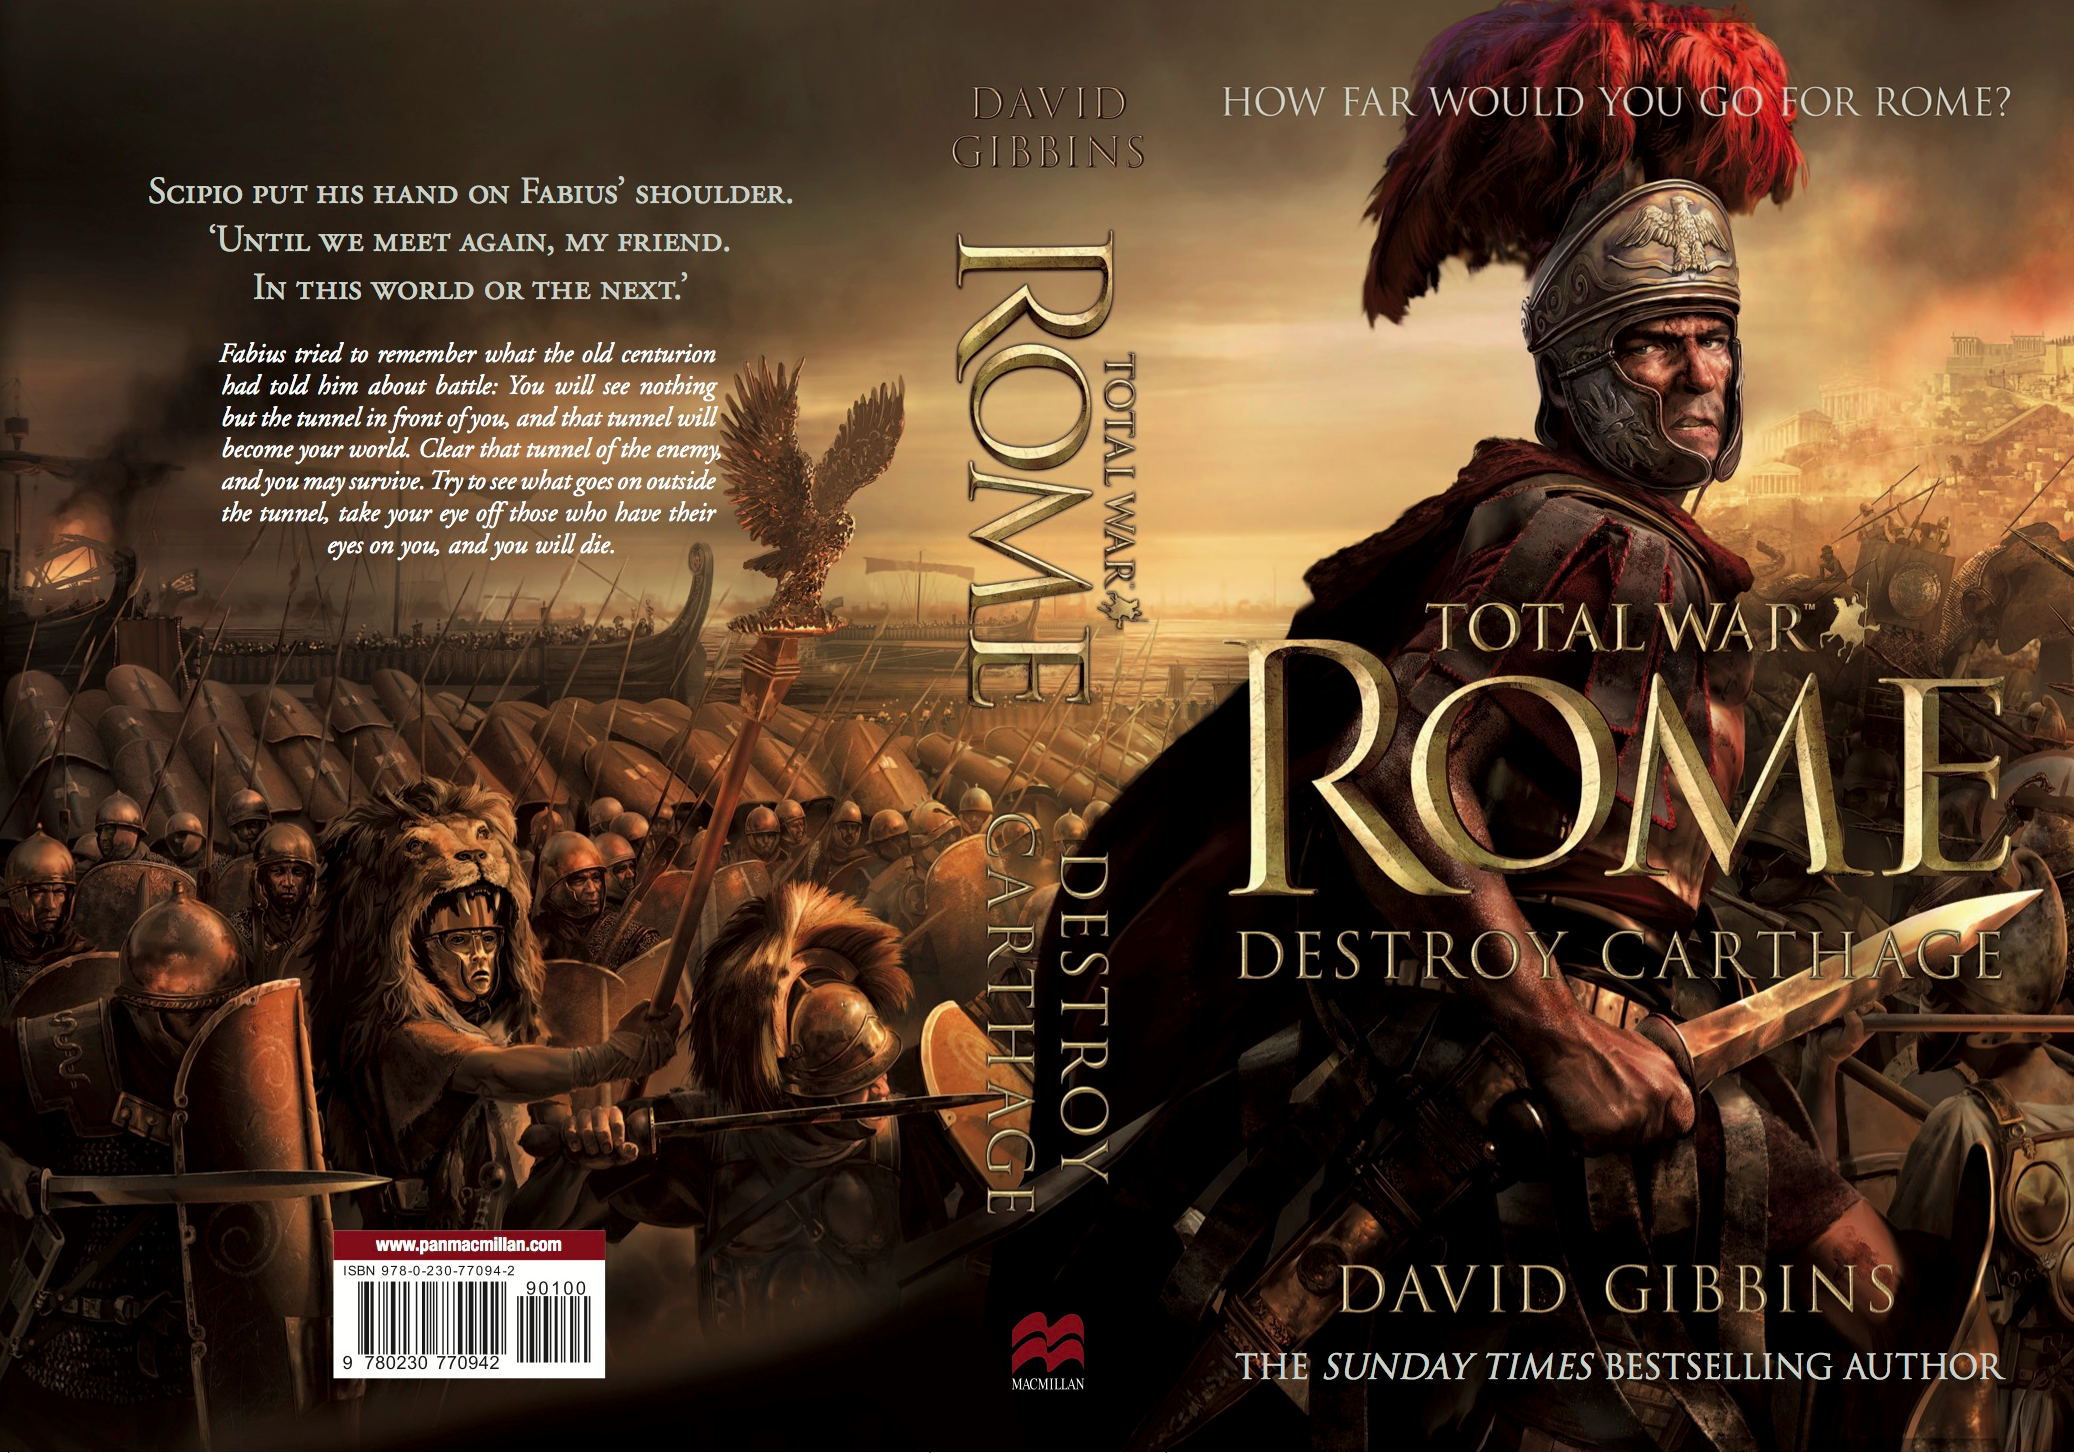 Total War Rome full jacket.jpg